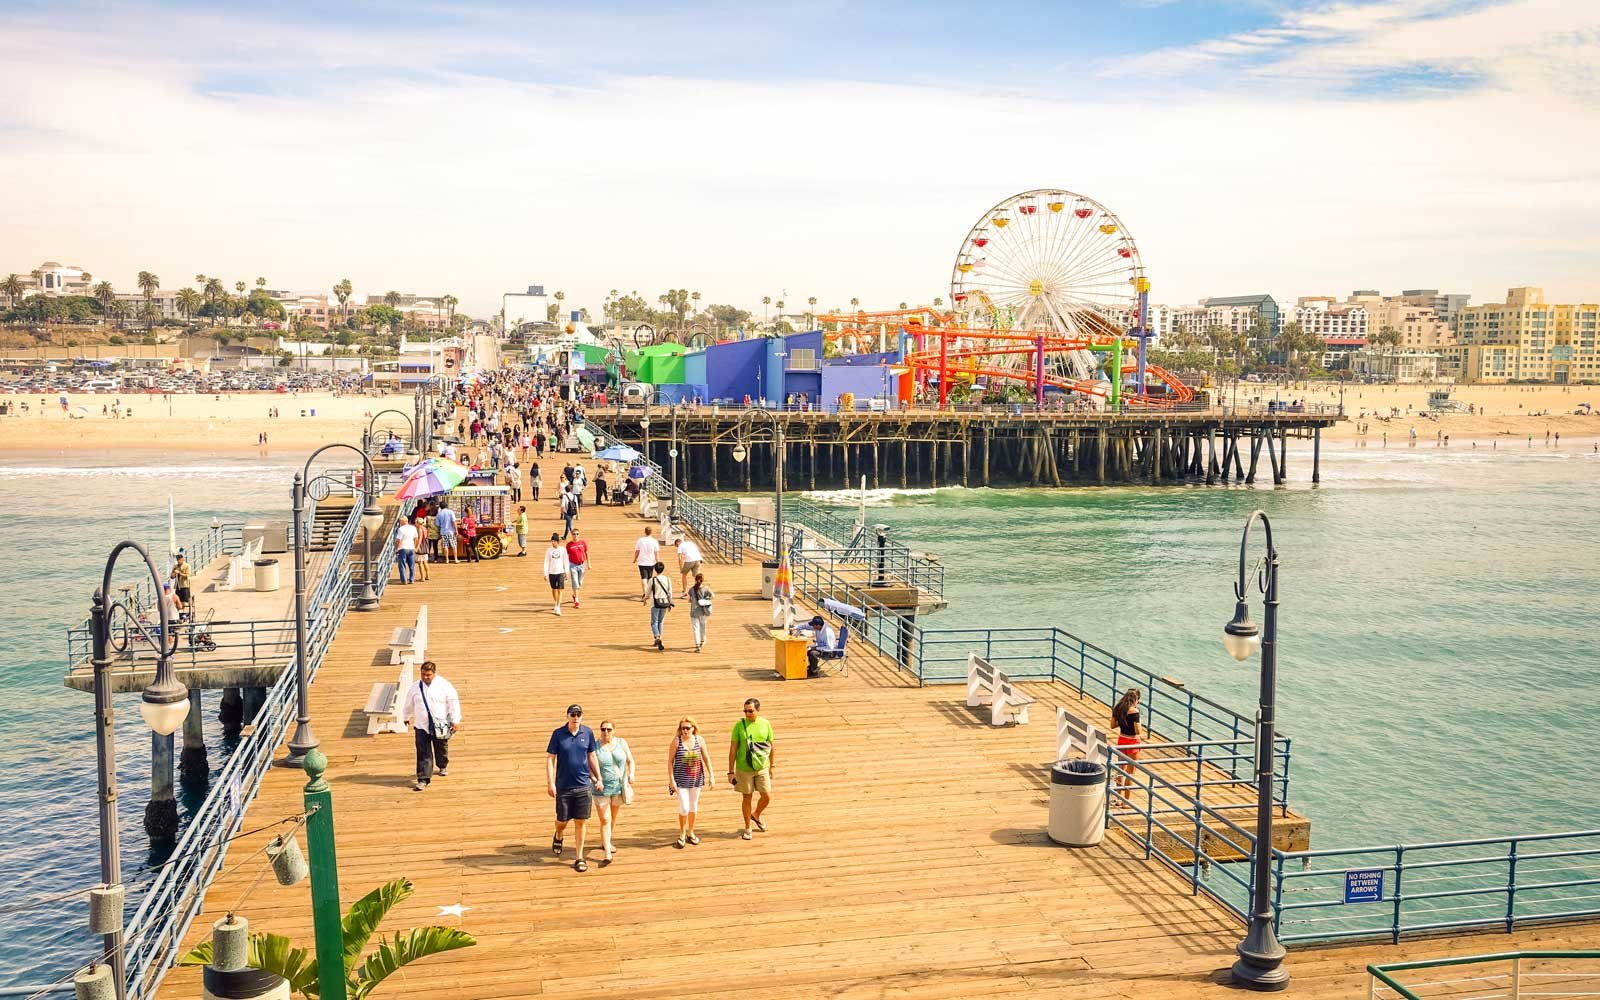 Santa Monica Pier with ferris wheel of Pacific Amusement Park